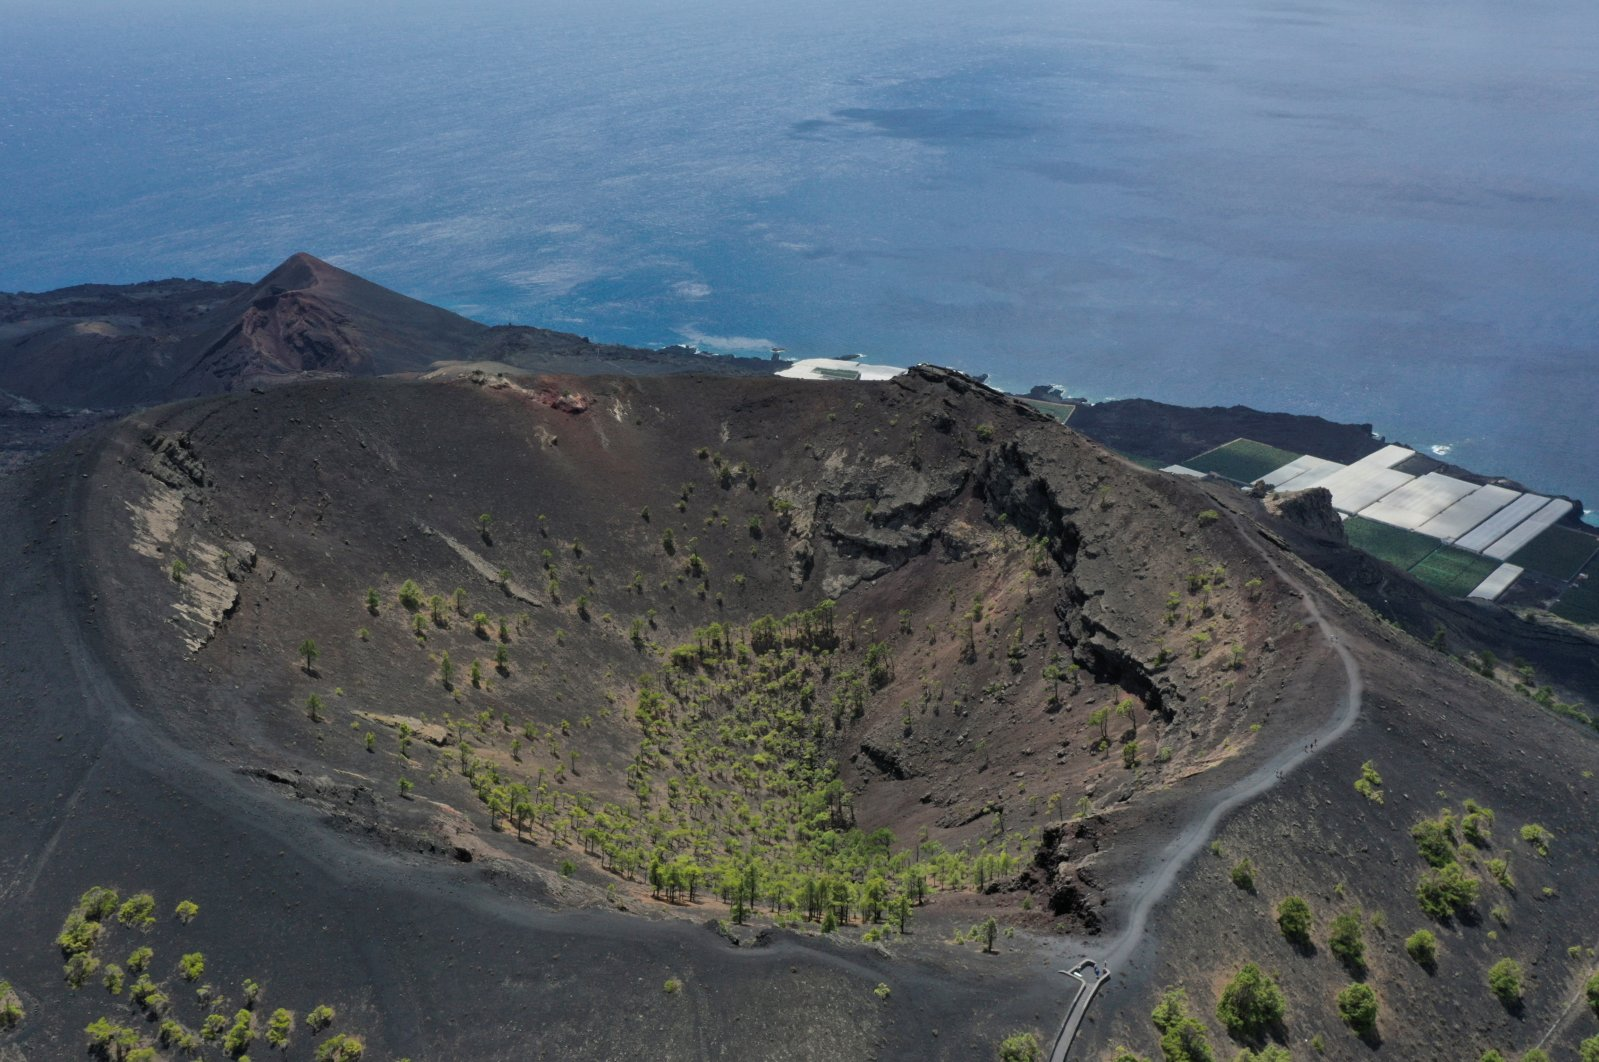 An aerial view of San Antonio Volcano in the foreground and Teneguia Volcano in the background, on the Canary Island of La Palma, Spain, Sept. 17, 2021. (Reuters Photo)